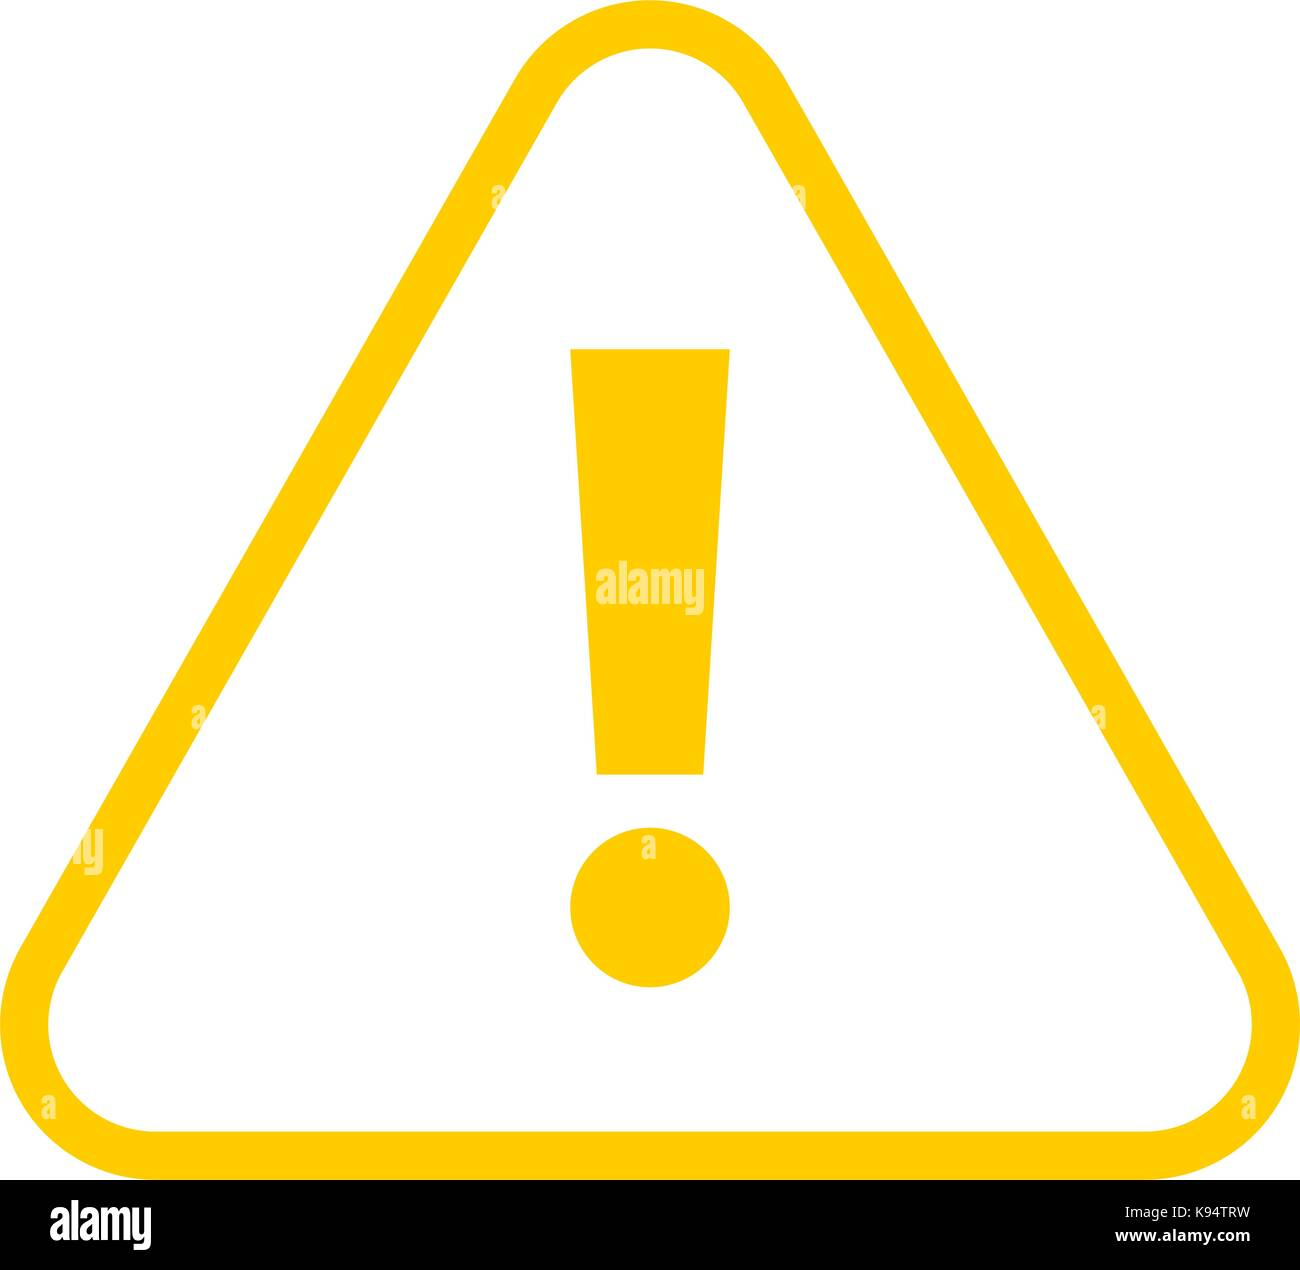 Use it in all your designs. Thin line style exclamation mark icon warning sign attention button in triangle shape. - Stock Image